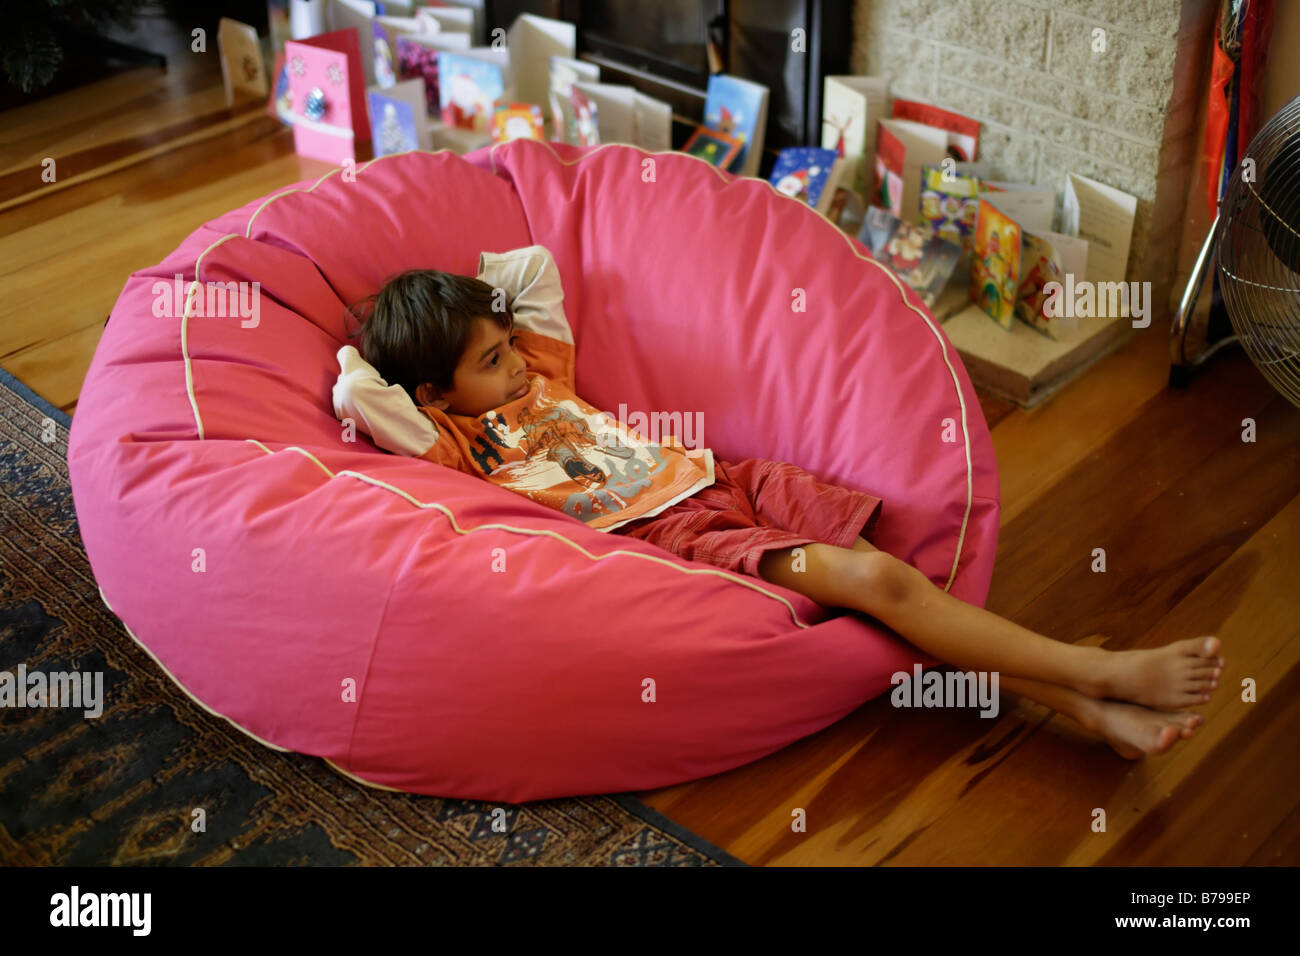 Six year old boy sits in pink beanbag and watches tv - Stock Image